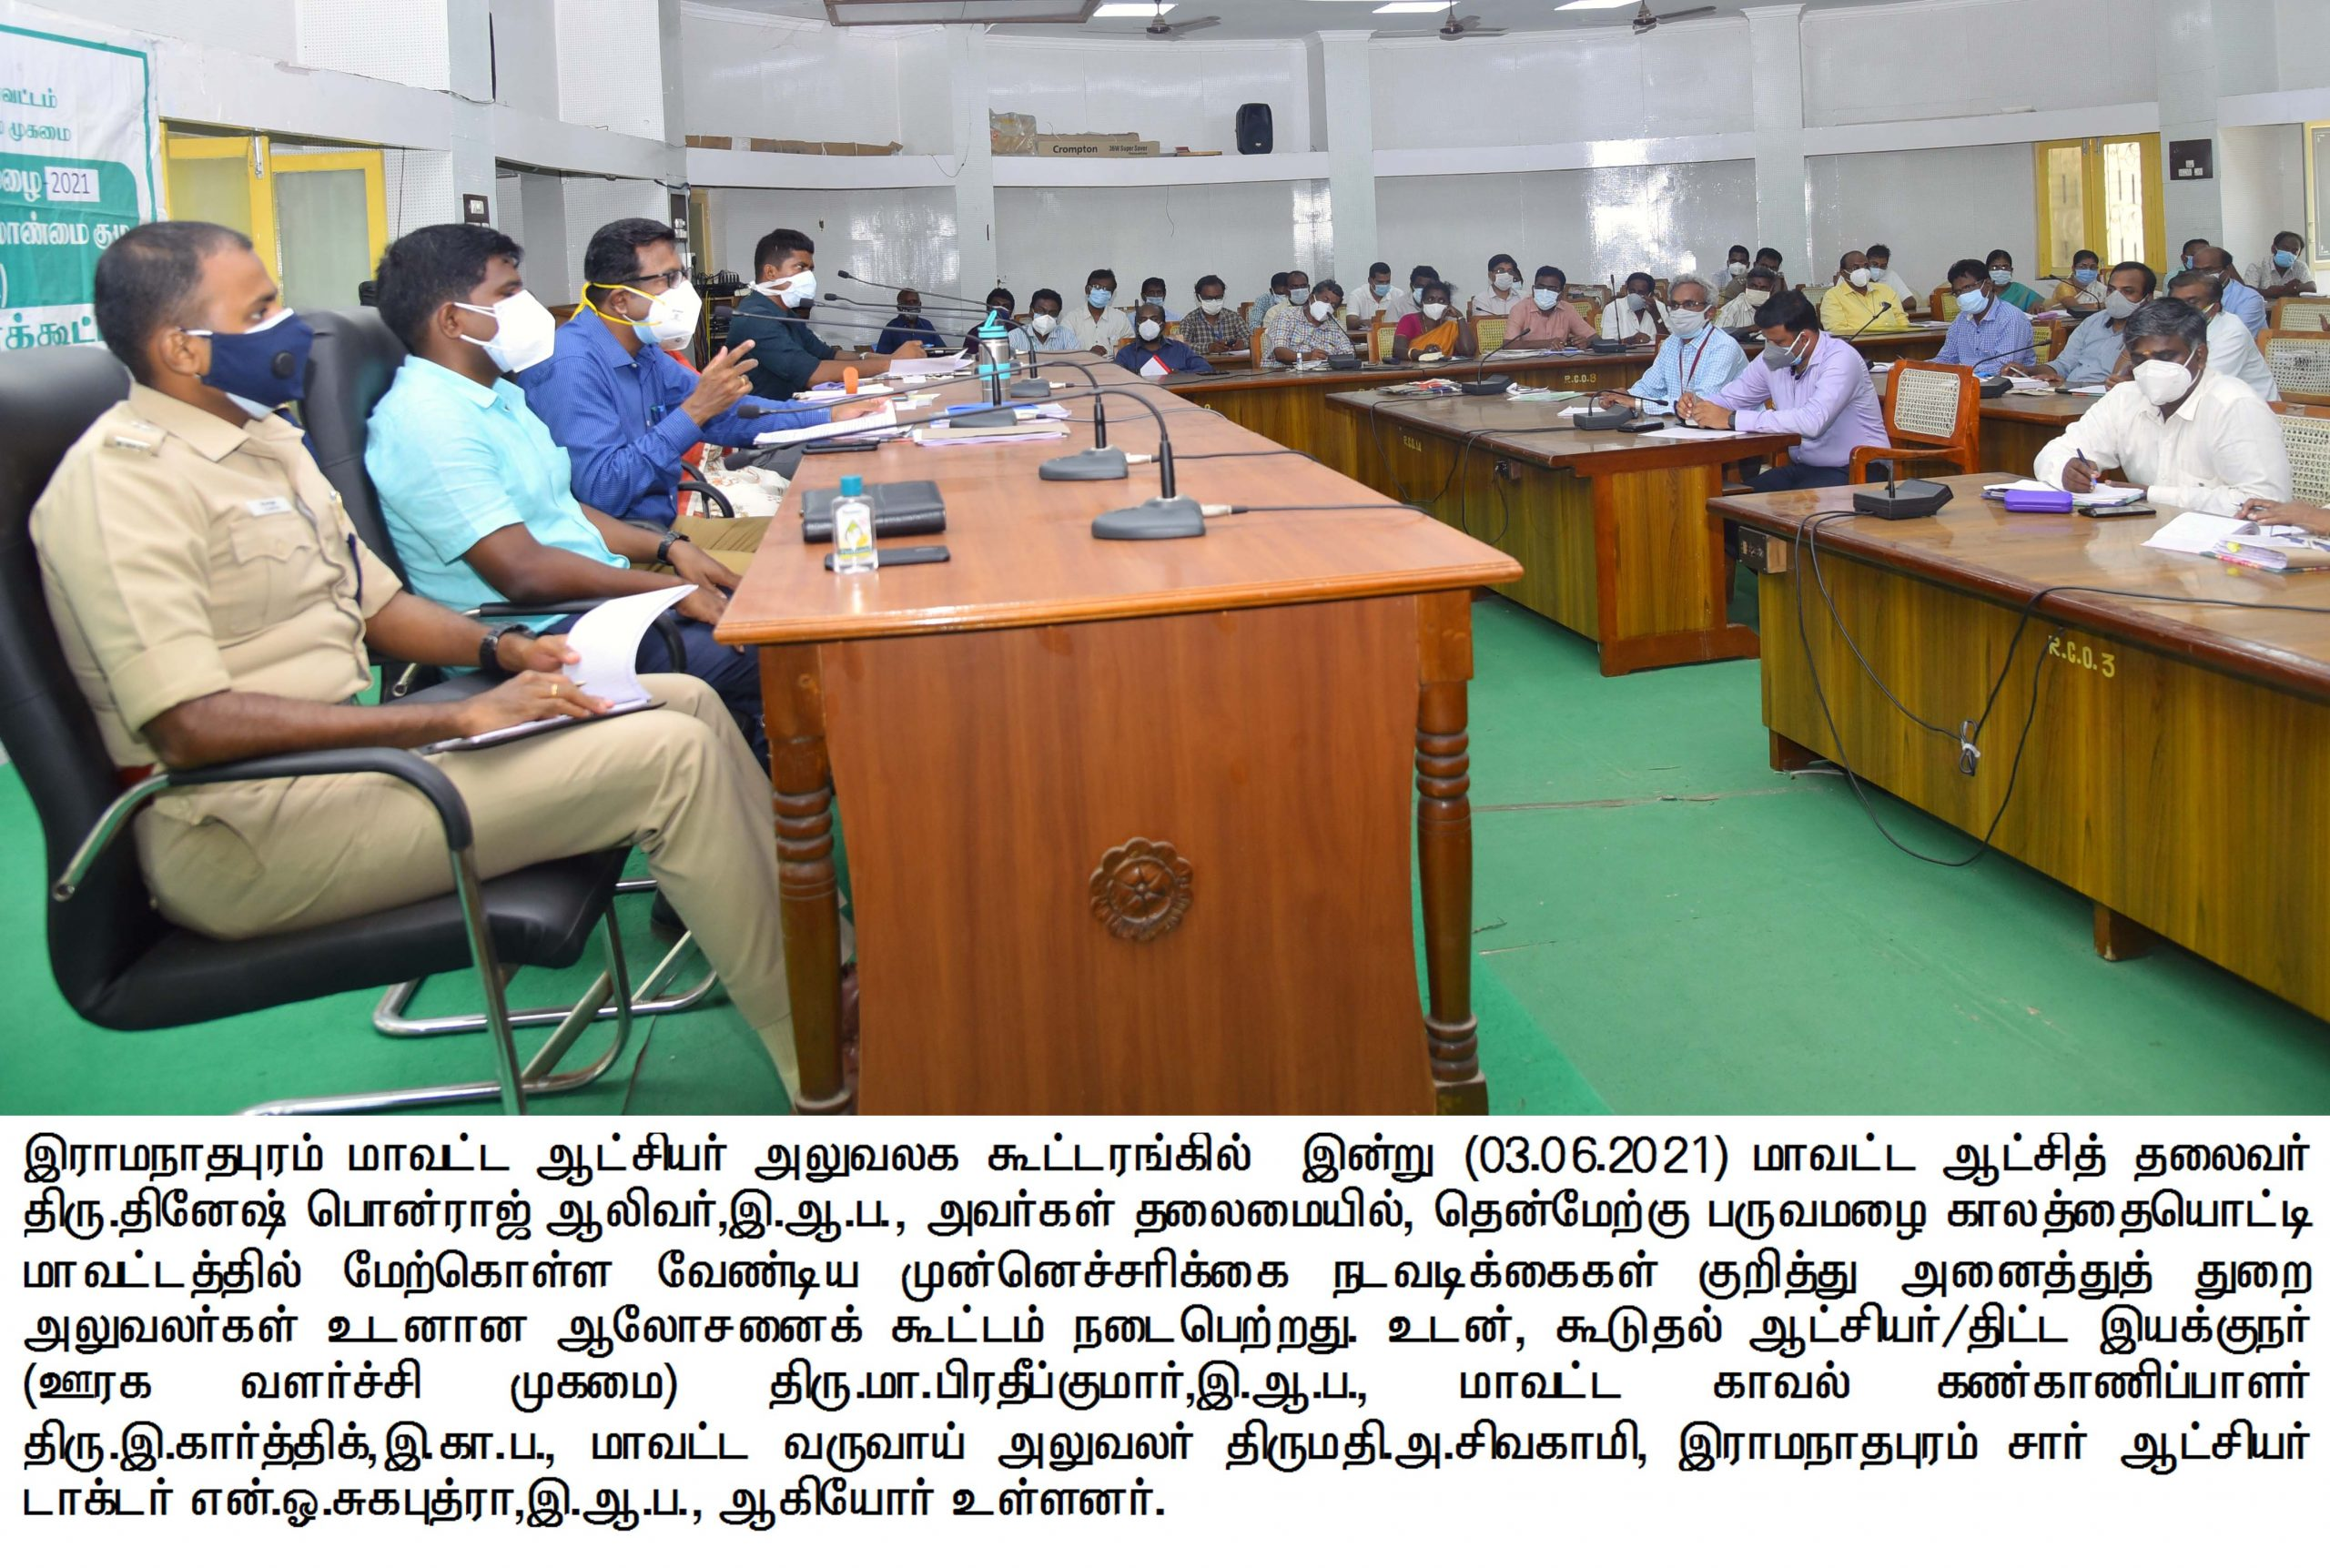 03_DISASTER MANAGEMENT_SOUTH WEST MONSOON_PRECAUTION MEETING_03/06/2021